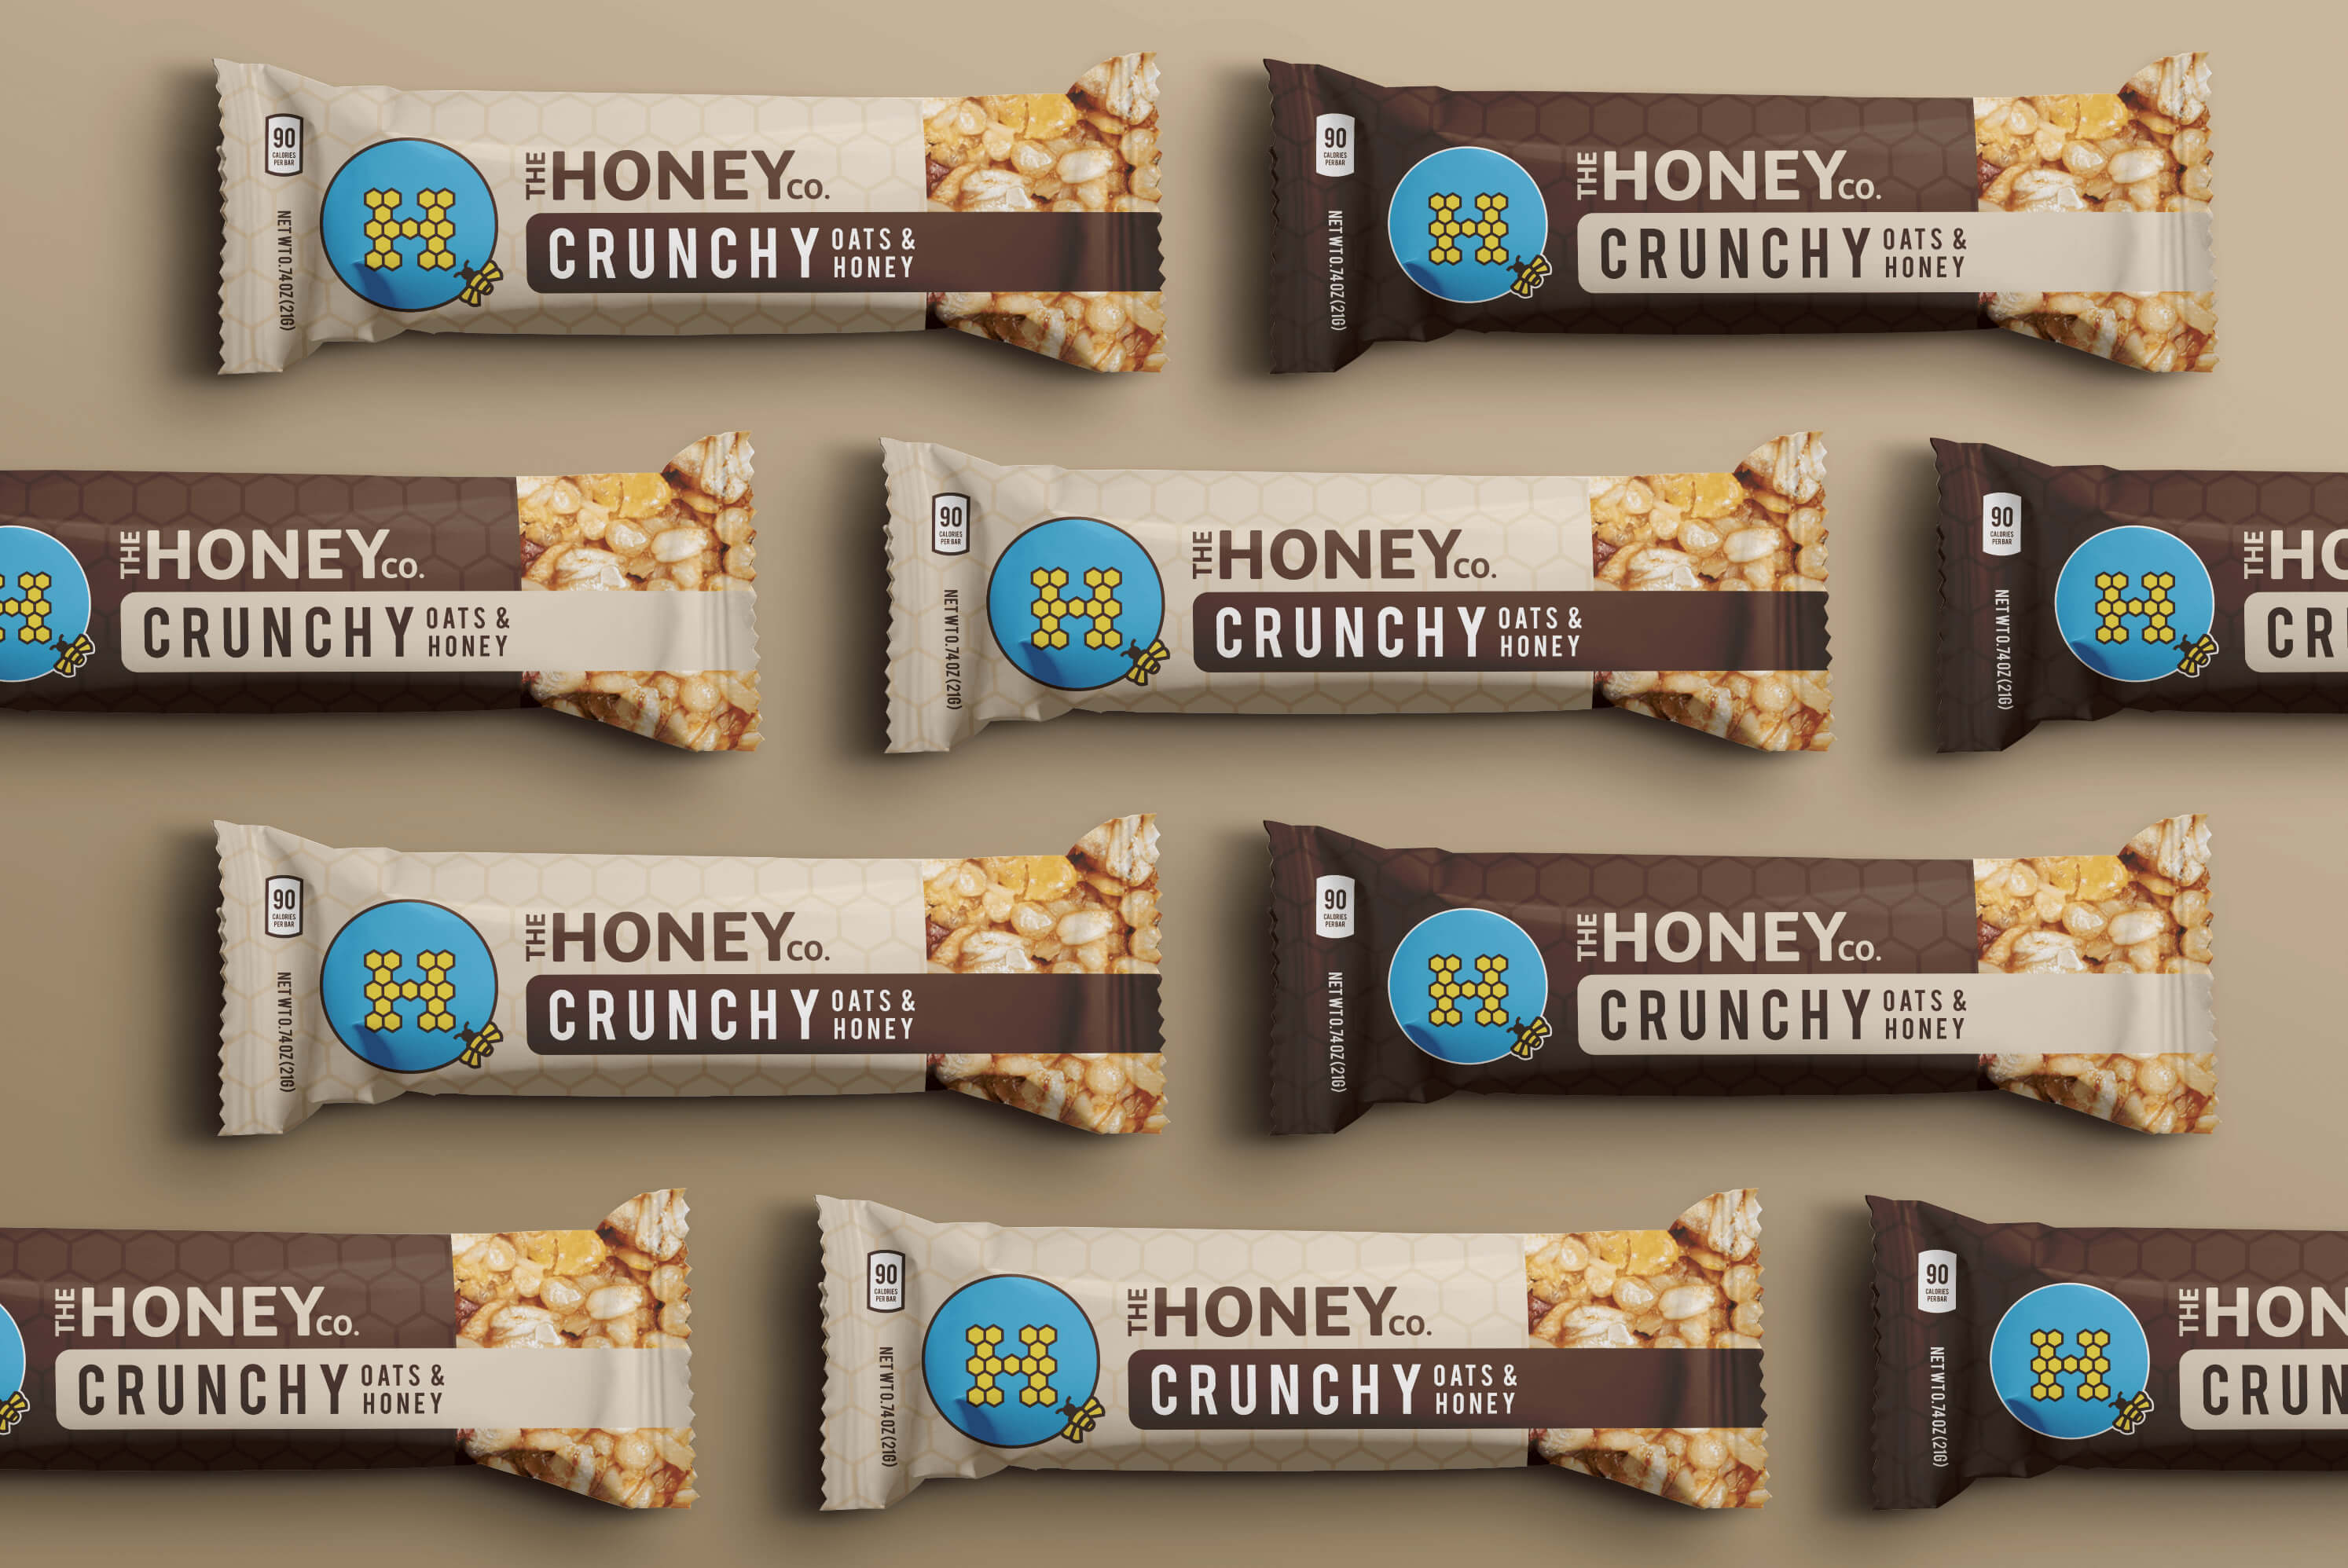 the-honey-co-crunchy-oats-honey-breakfast-bar-packaging-wrapper-design-agent-orange-design.jpg